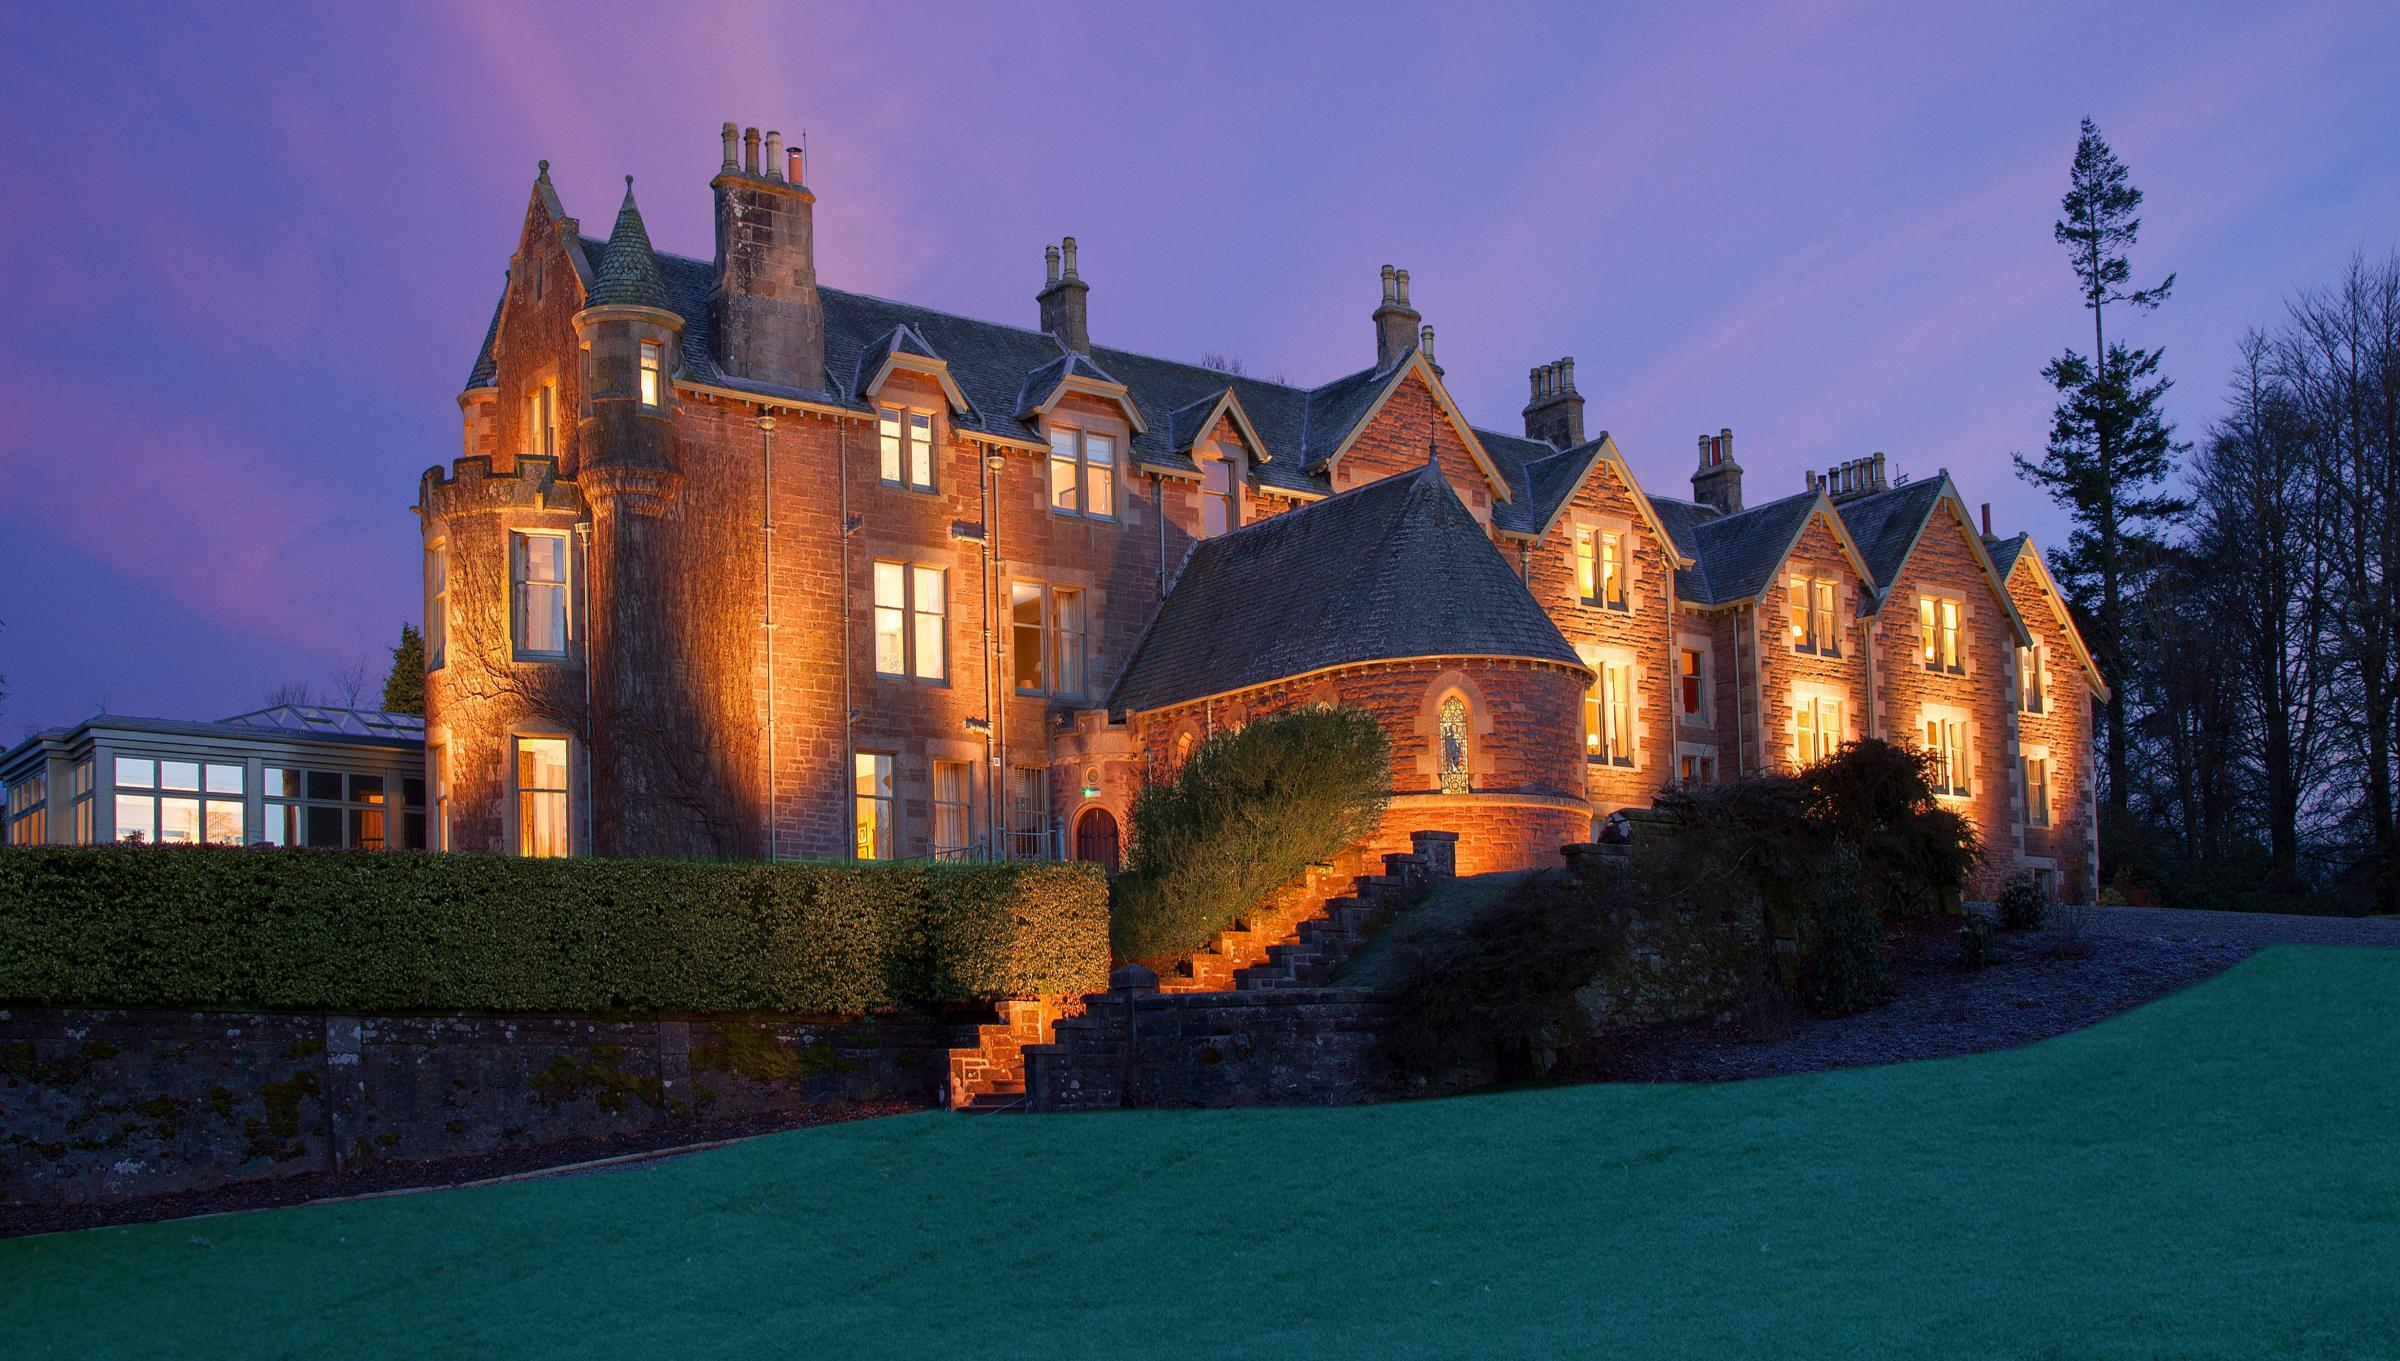 Cromlix Hotel was built on the land once owned by James Chisholm, the Bishop of Dunblane, and became a hotel in 1981